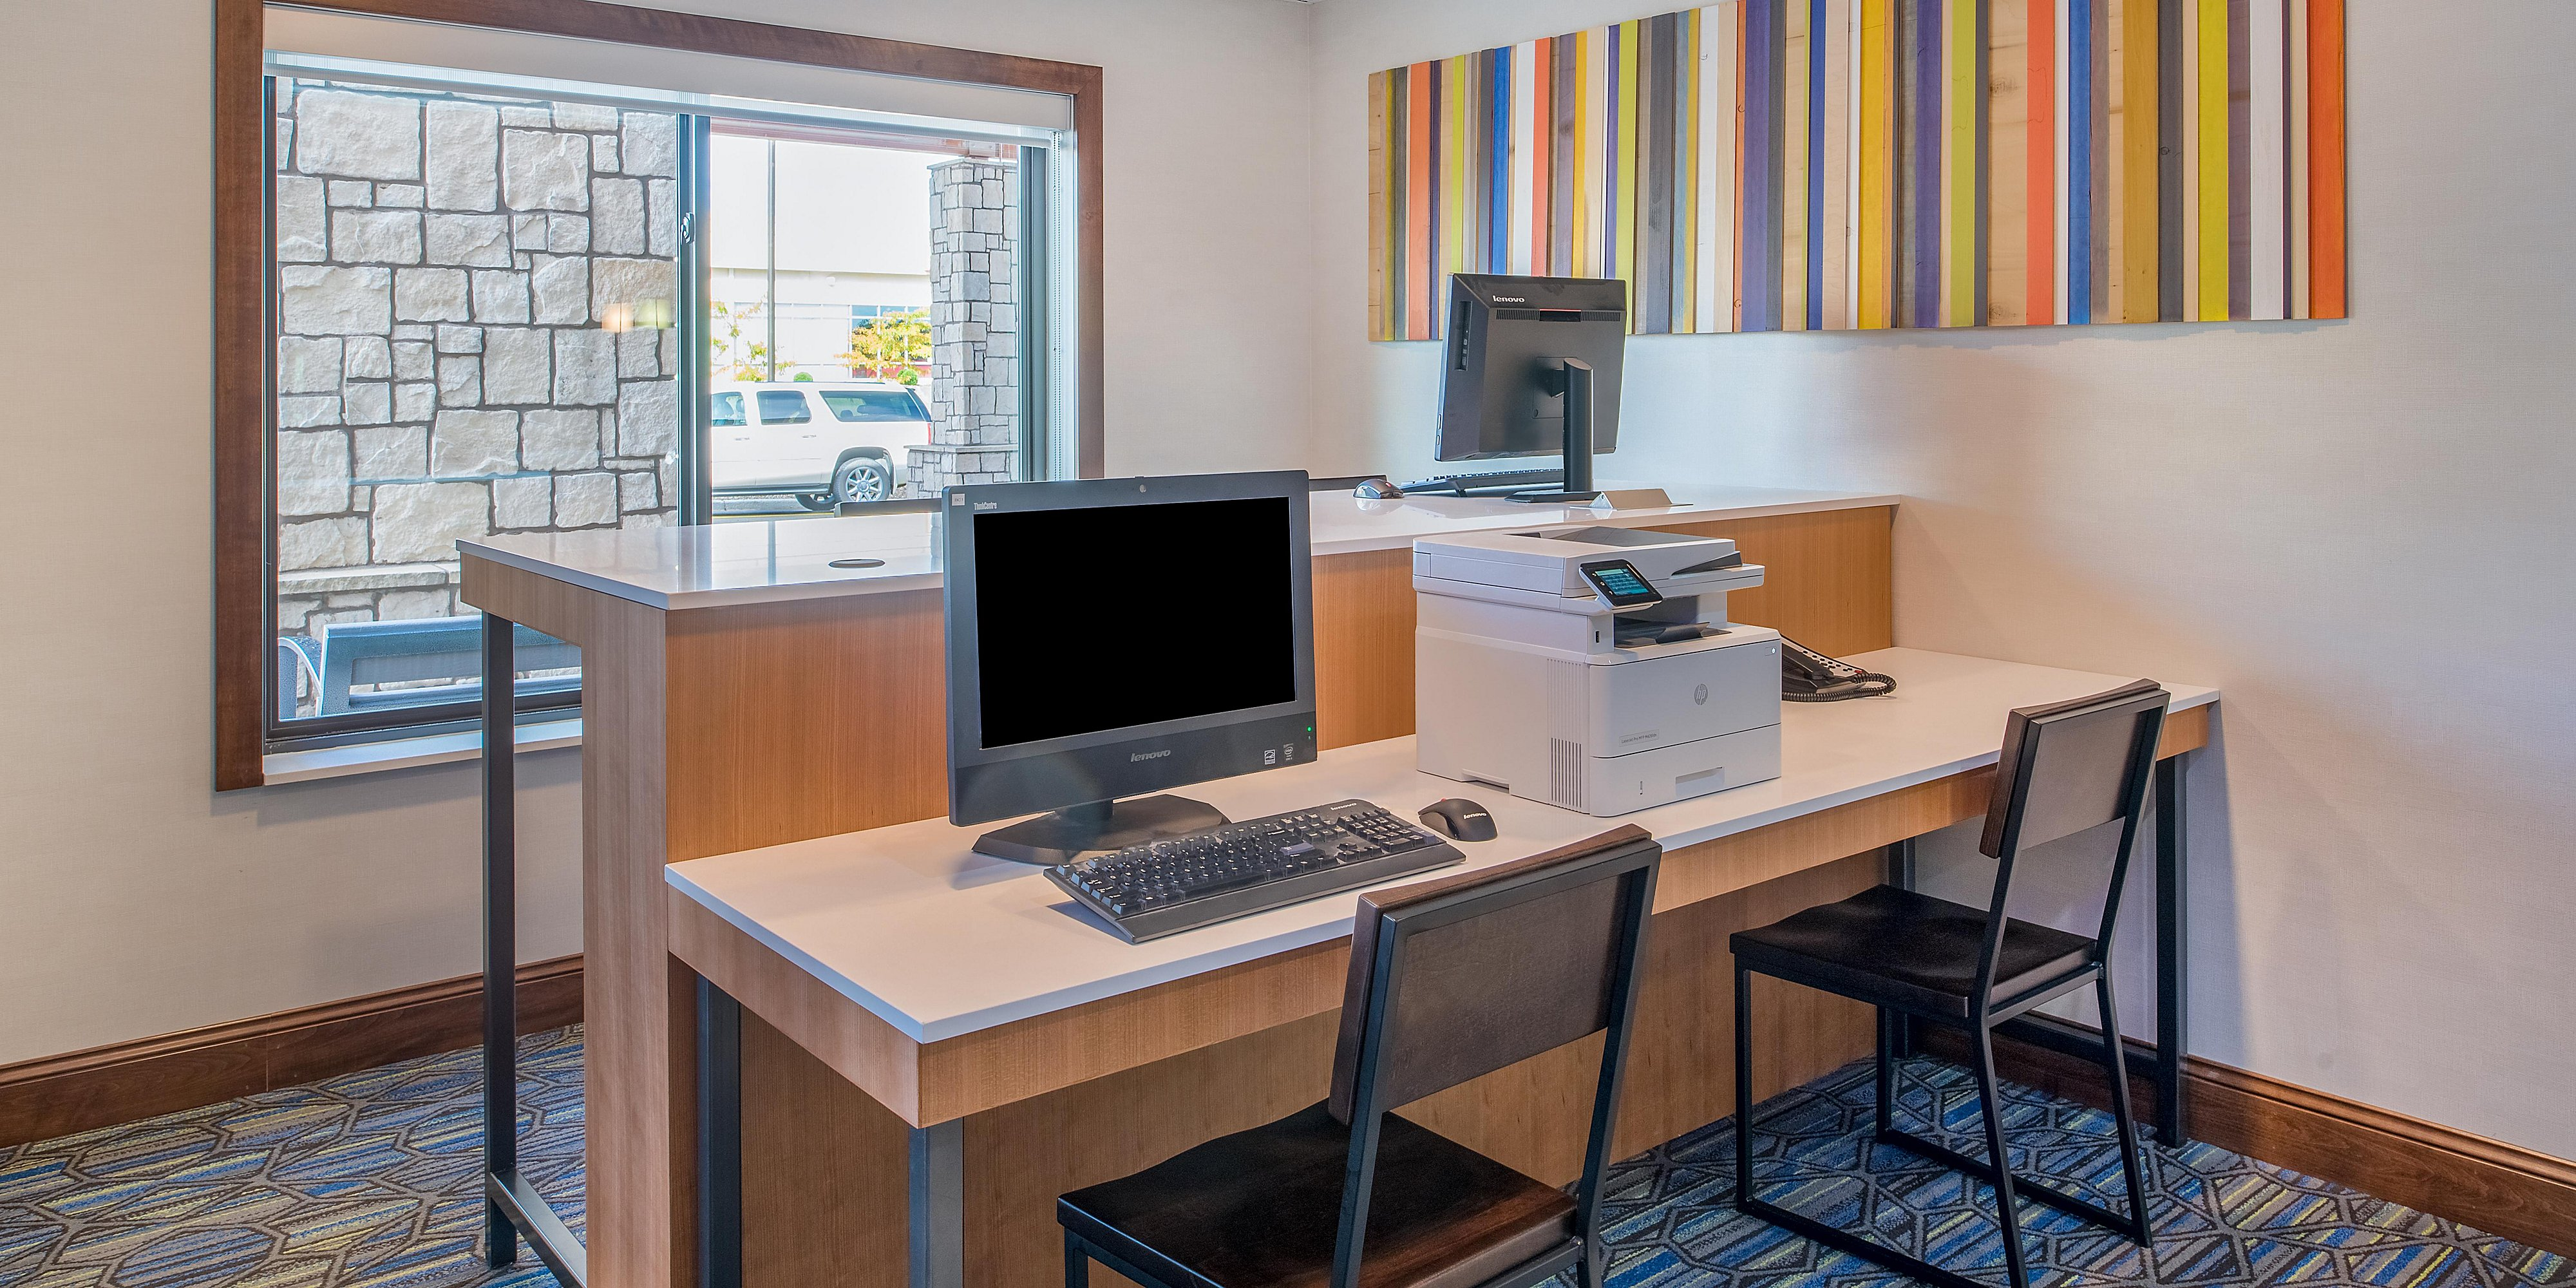 holiday-inn-express-and-suites-bismarck-4753830780-2x1